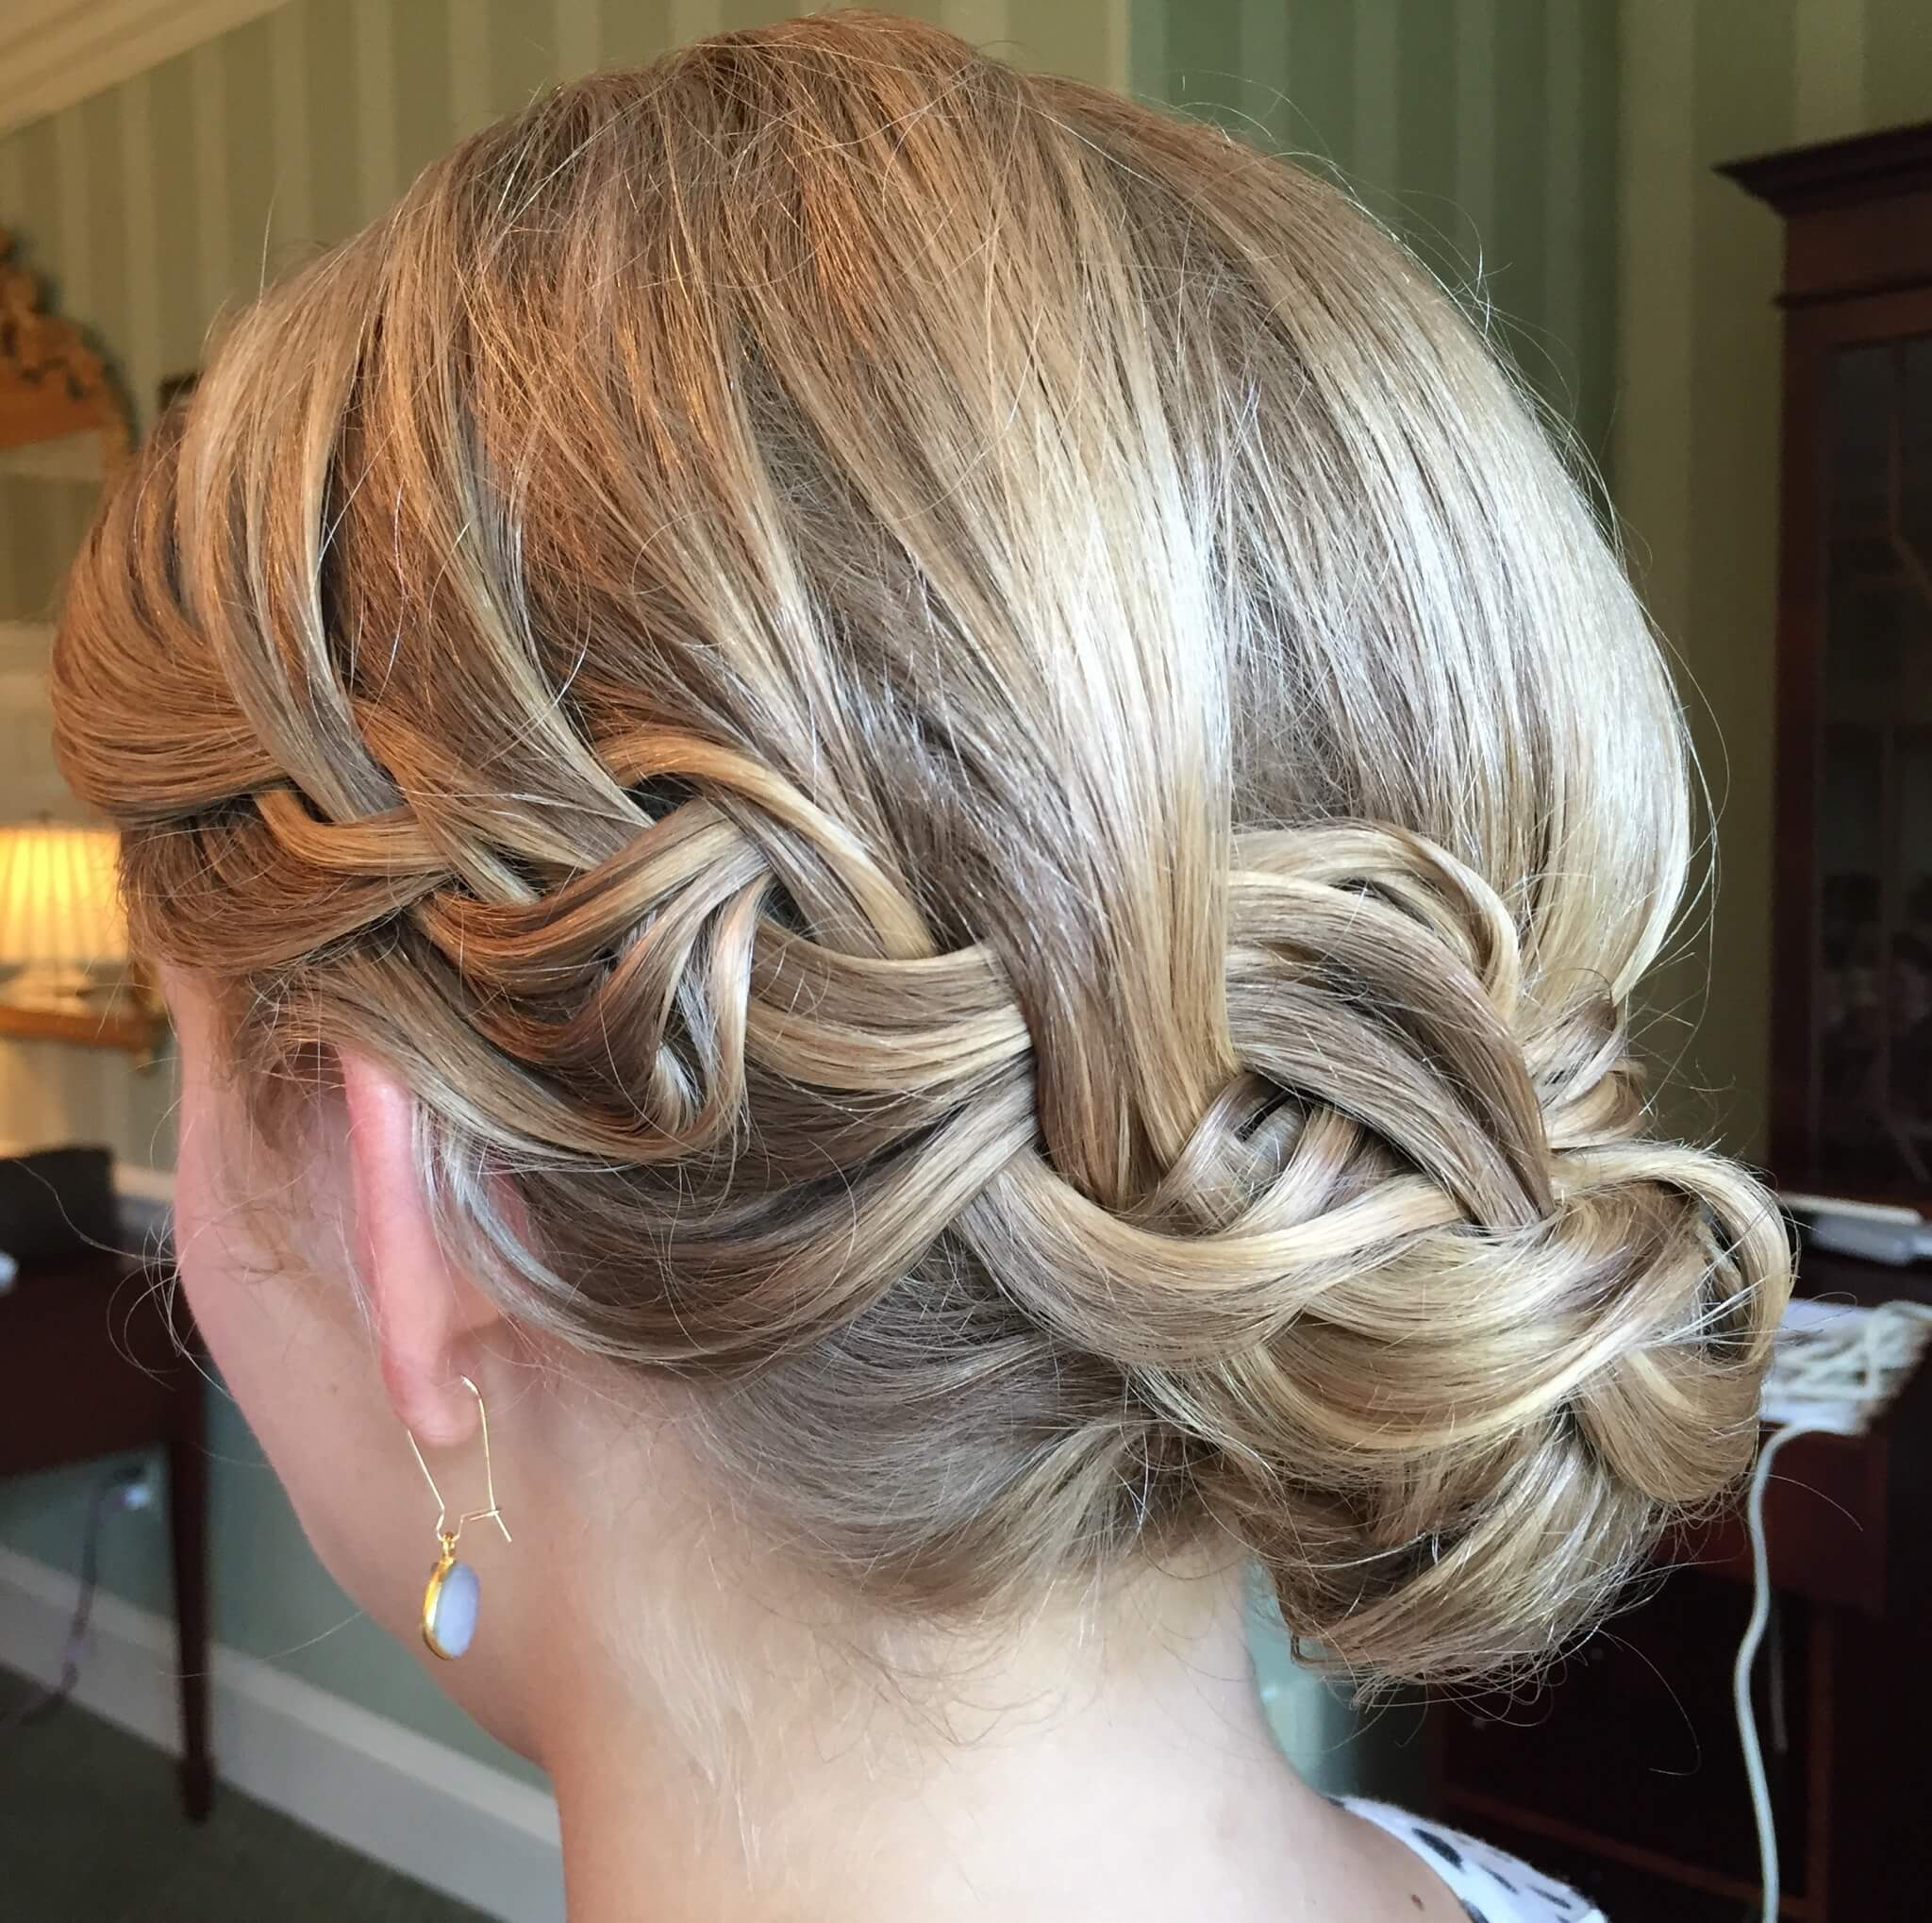 hair-salon-jacksonville-wedding-hairstyles-99-02